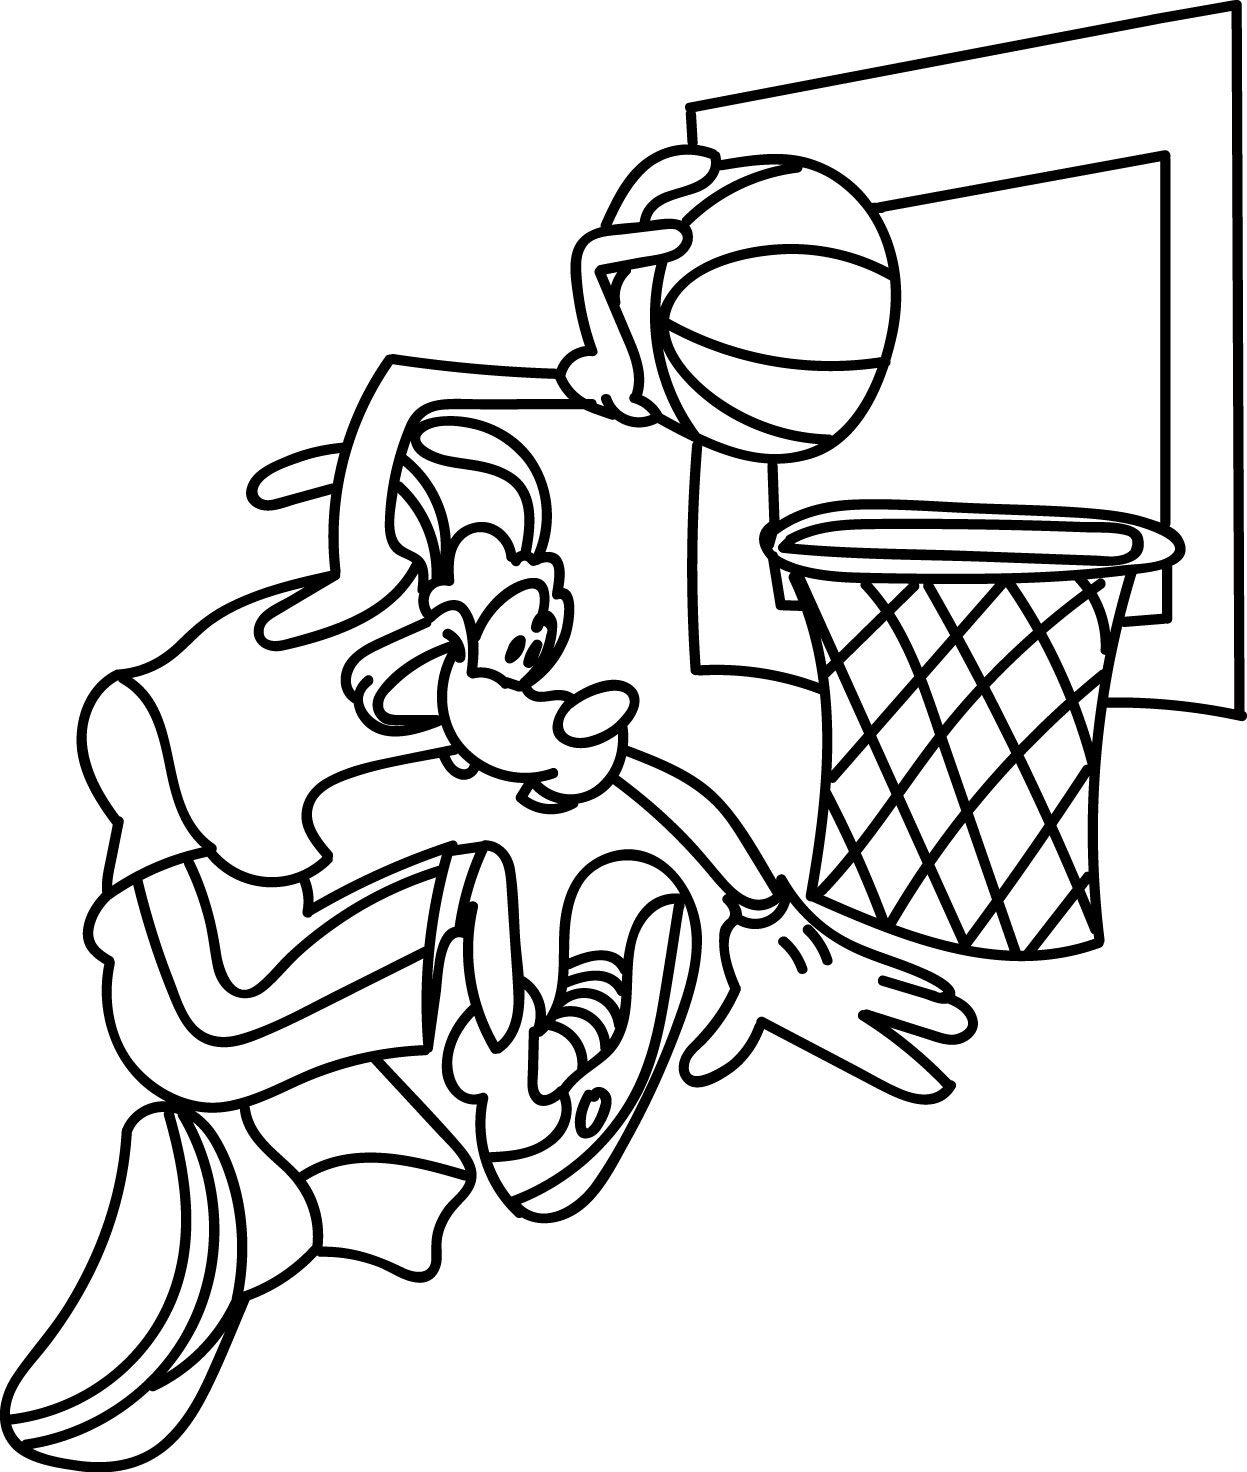 Awesome Goofy Playing Shot Basketball Coloring Pages